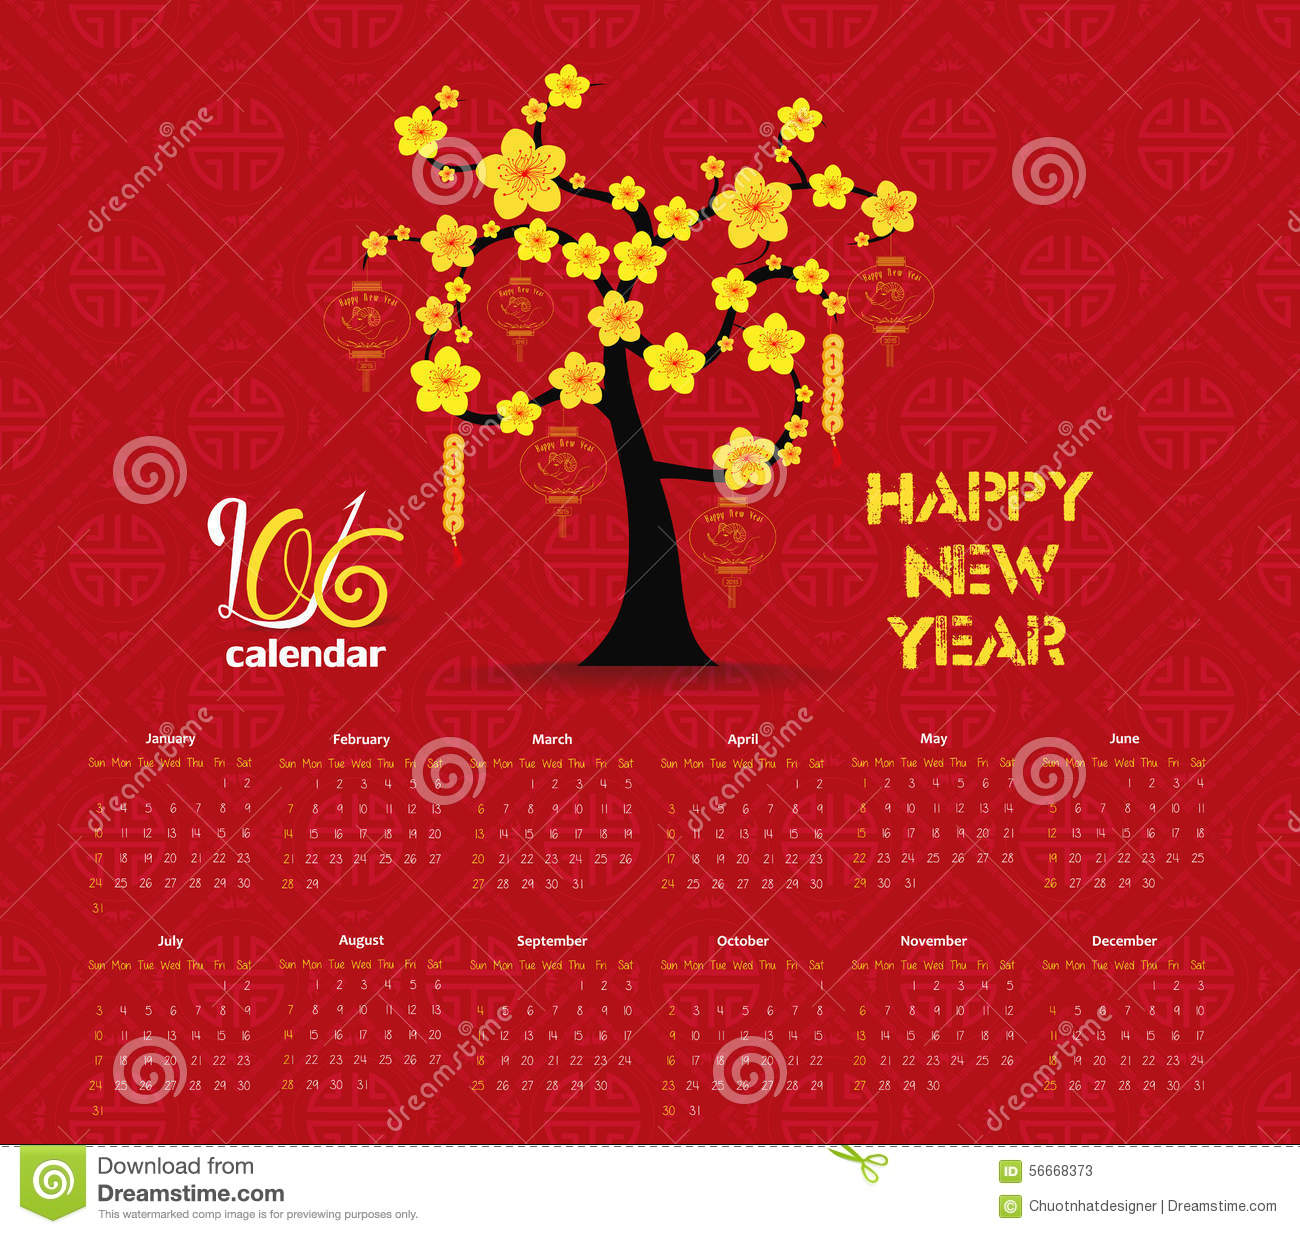 Japanese New Year Calendar : Calendar tree design for chinese new year celebration